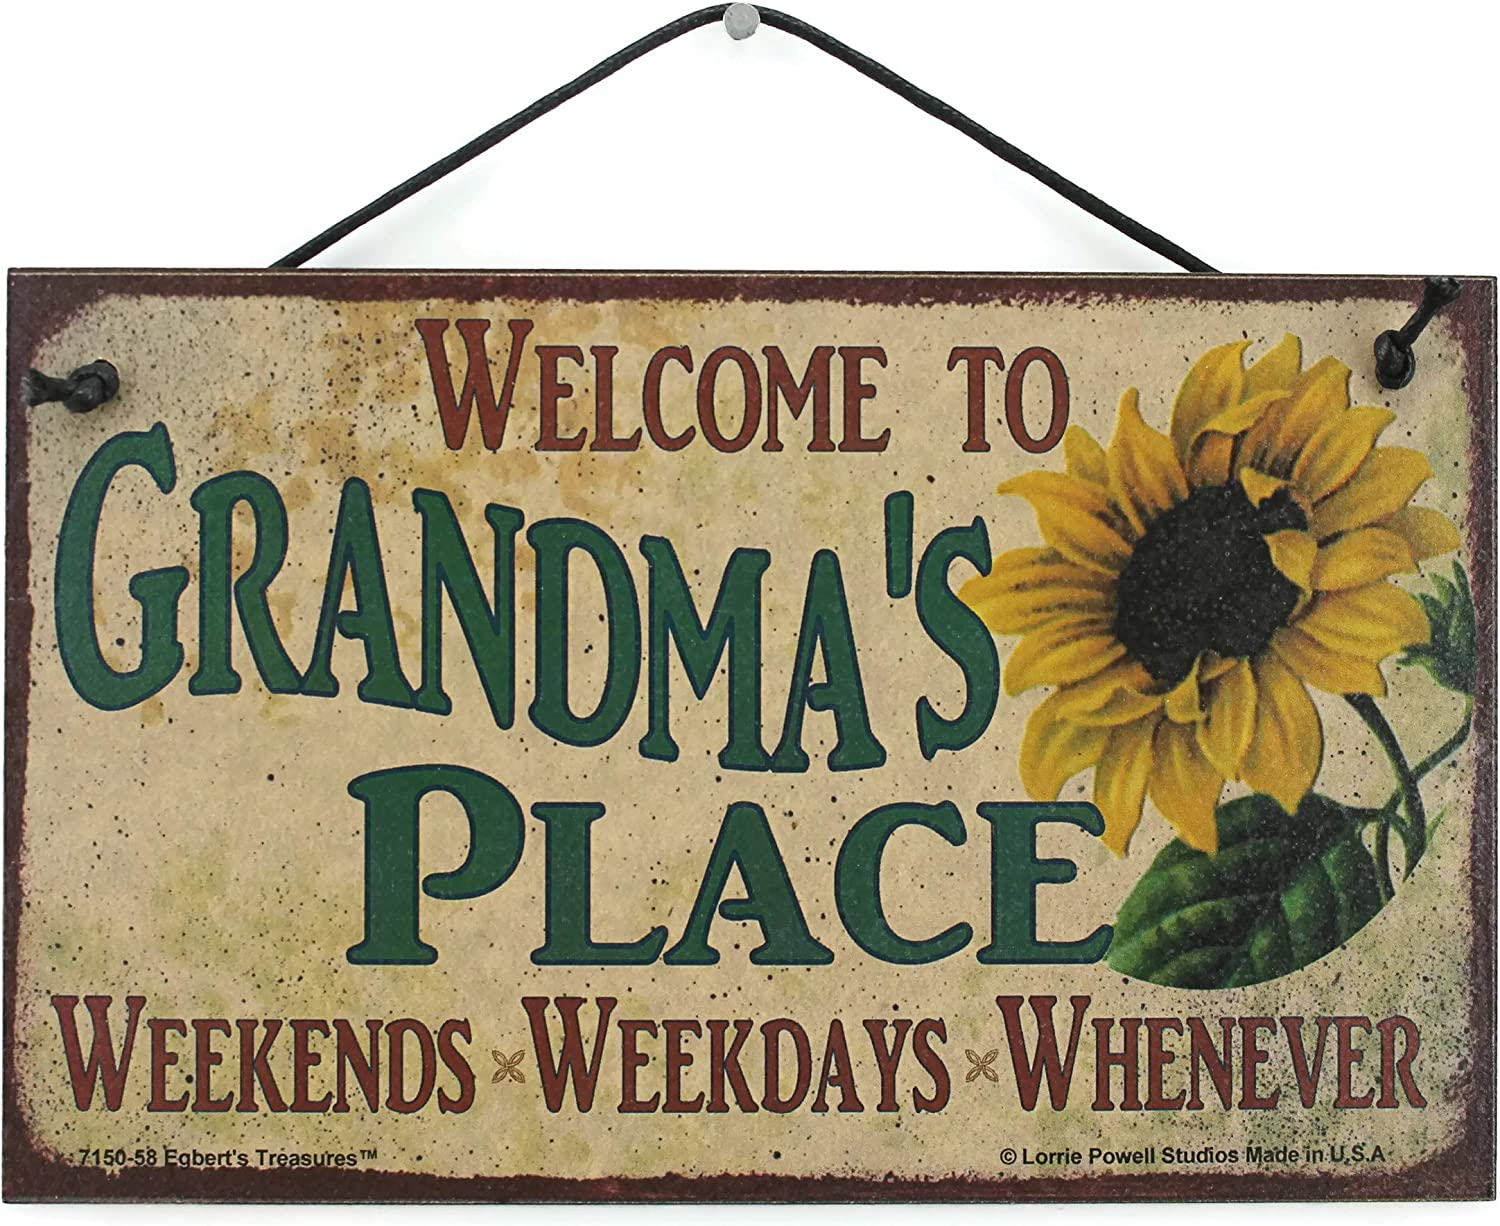 Egbert's Treasures 5x8 Vintage Style Sign with Sunflower Saying, Welcome to Grandma's Place Weekends, Weekdays, Whenever Decorative Fun Universal Household Family Signs for Grandparents